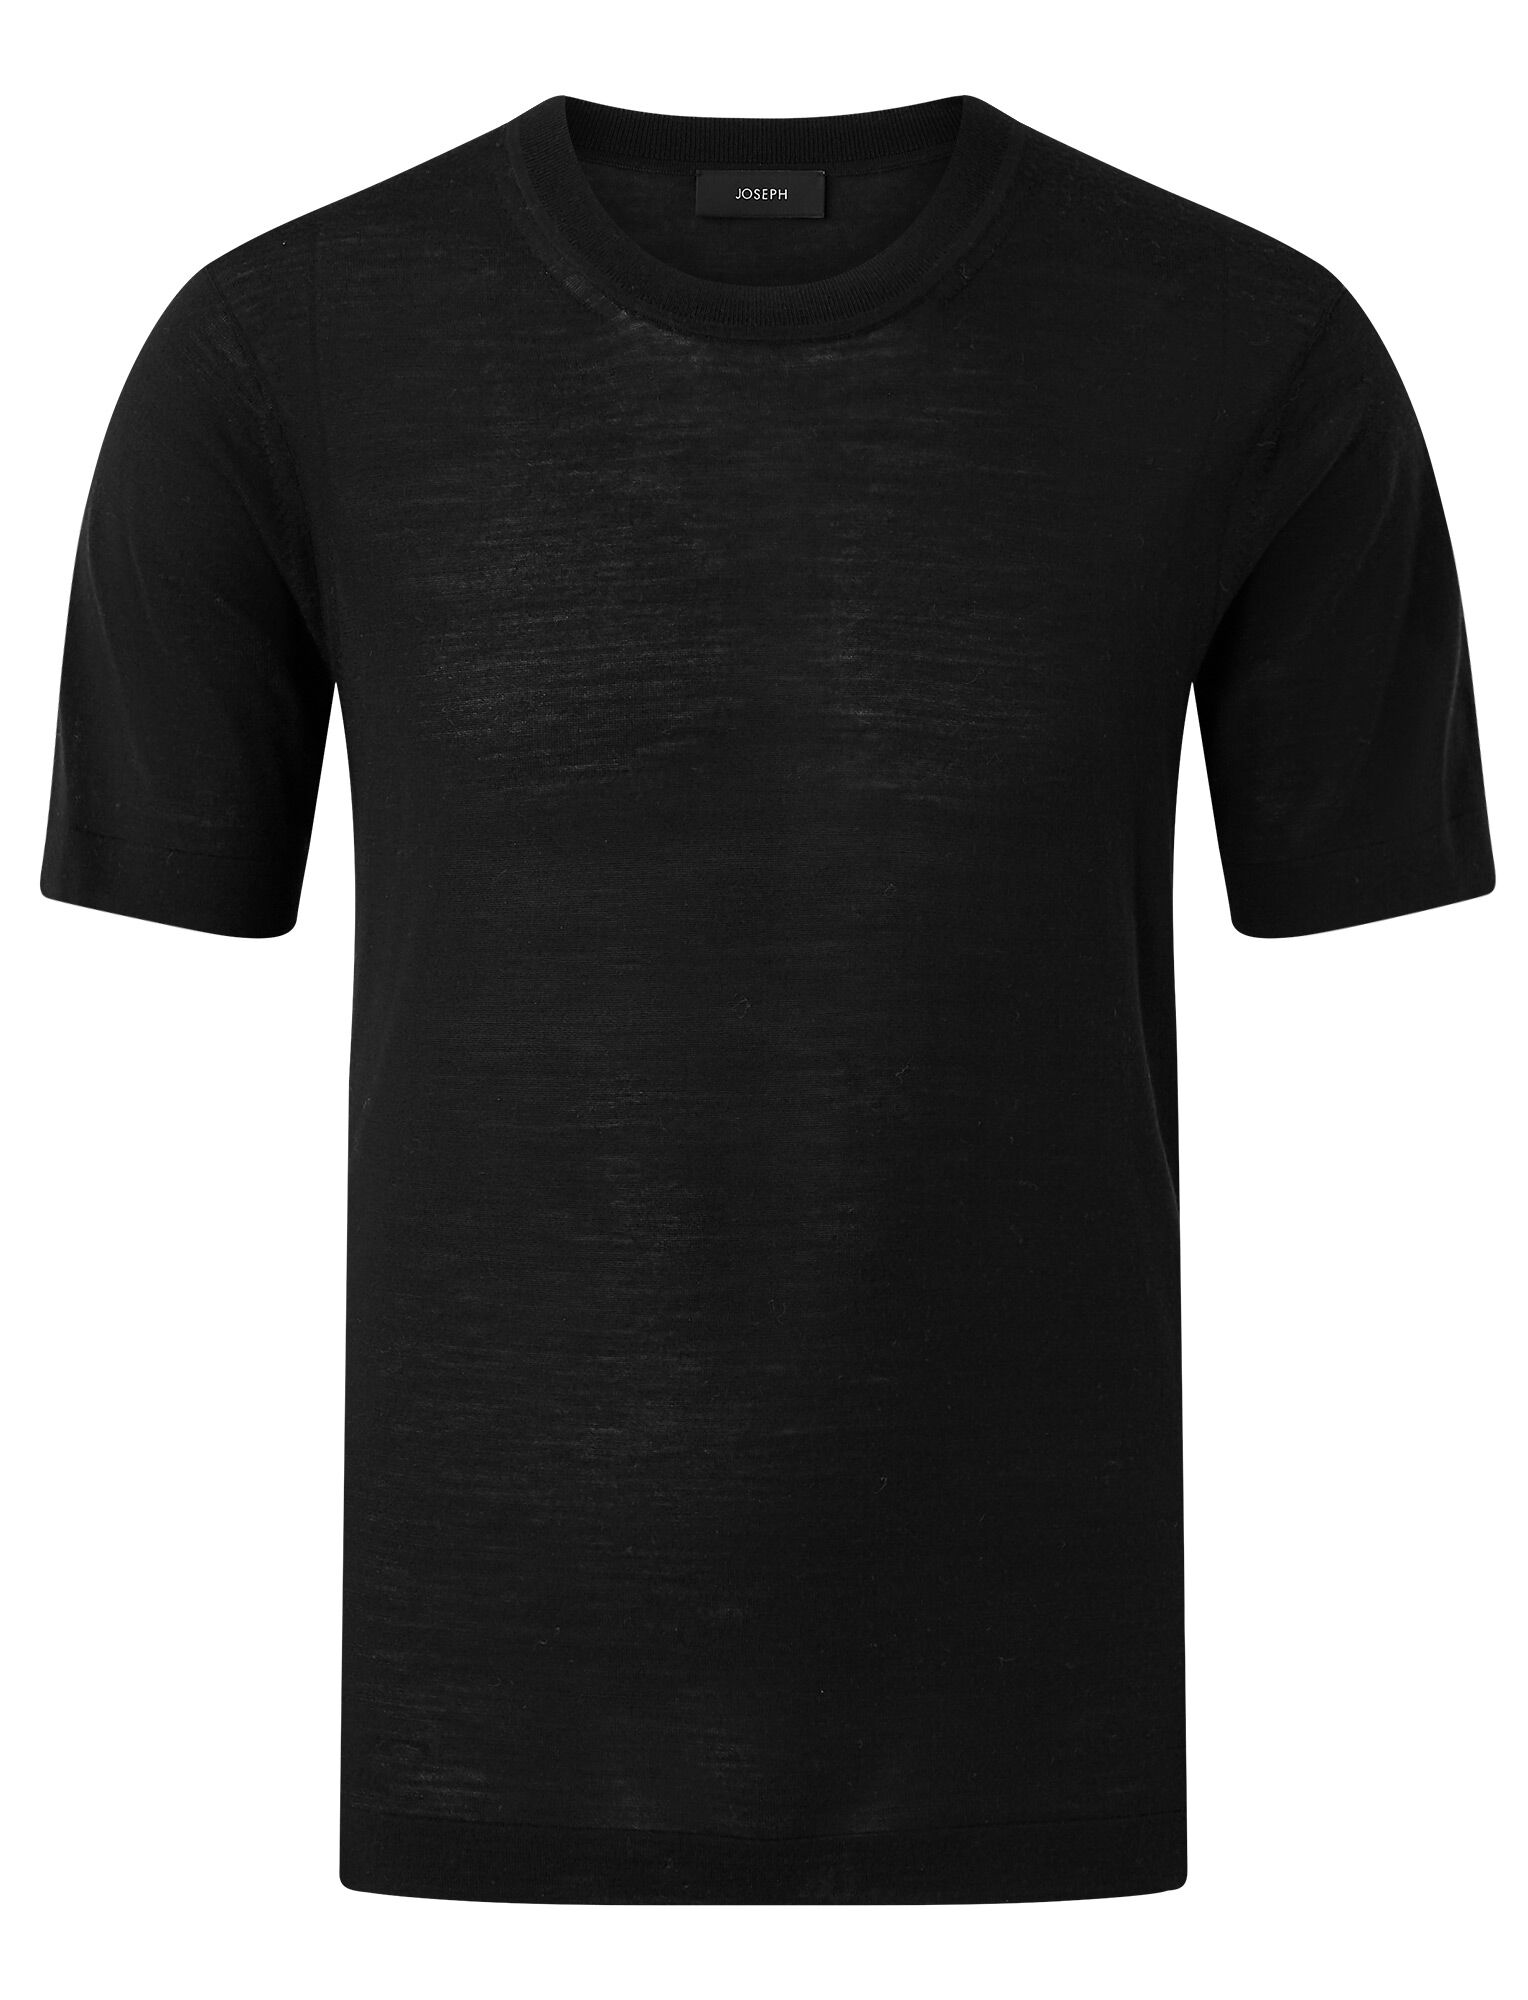 Joseph, Light Merinos Knit Tee, in BLACK